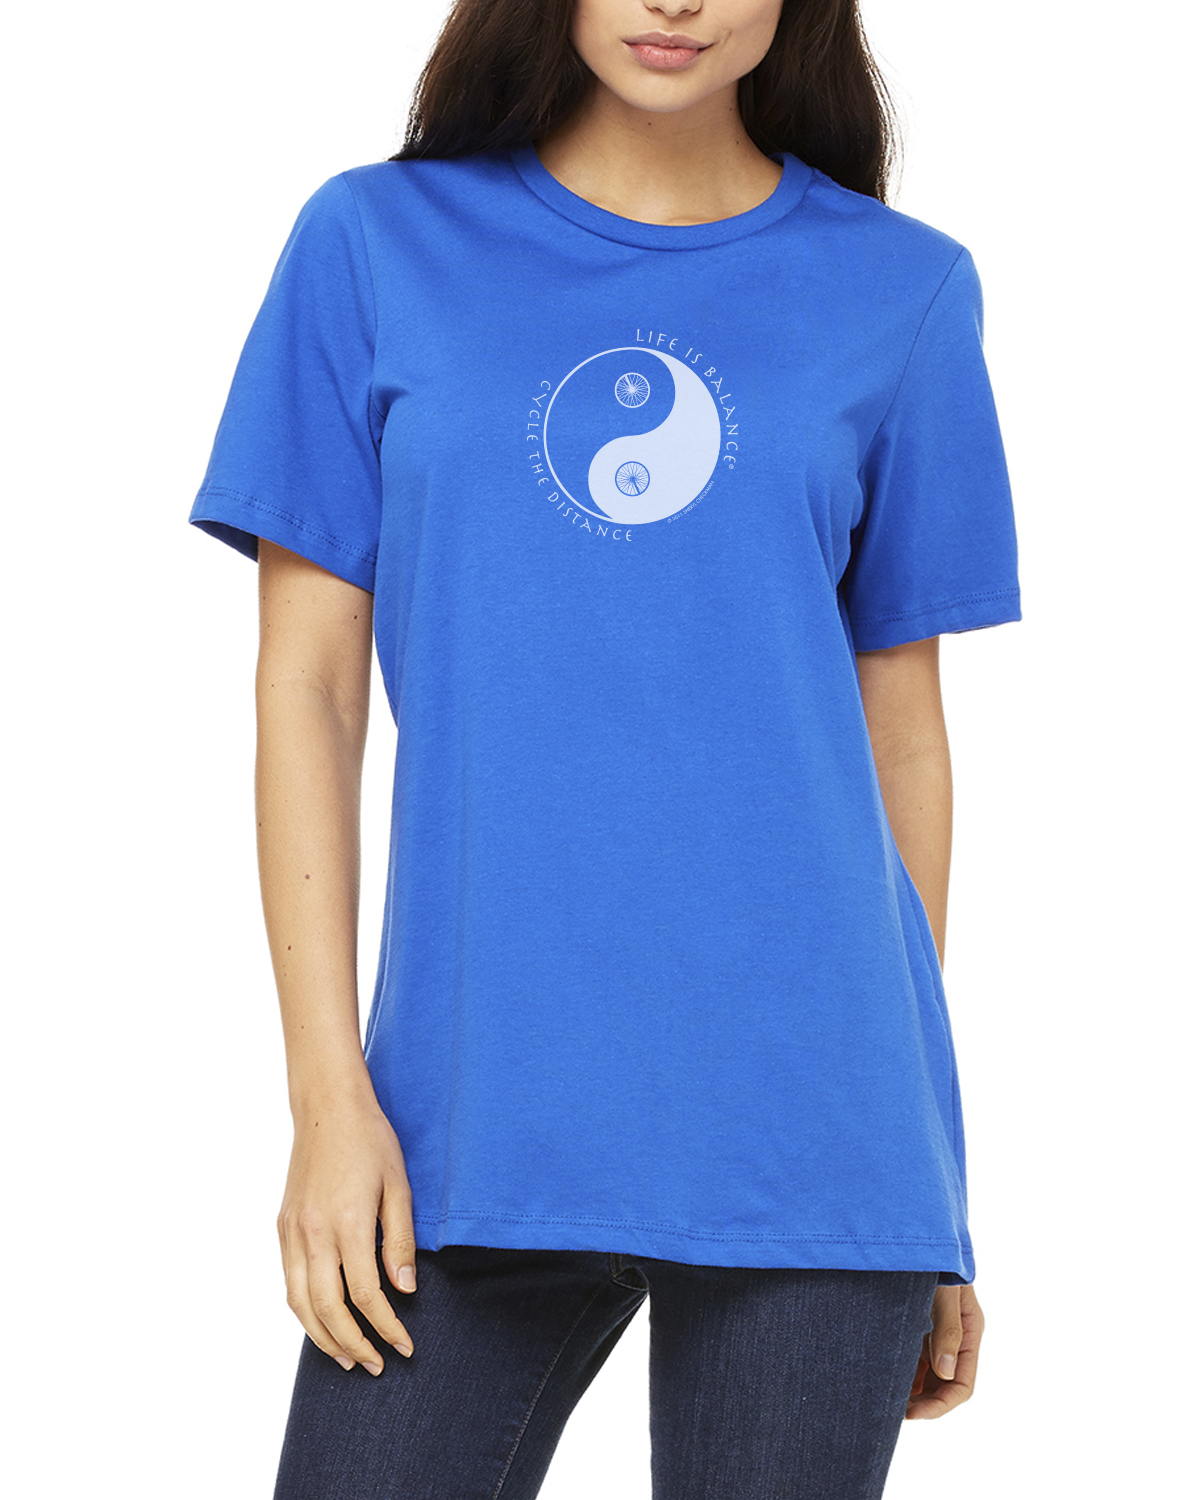 Women's short sleeve biking or cycling t-shirt (royal)